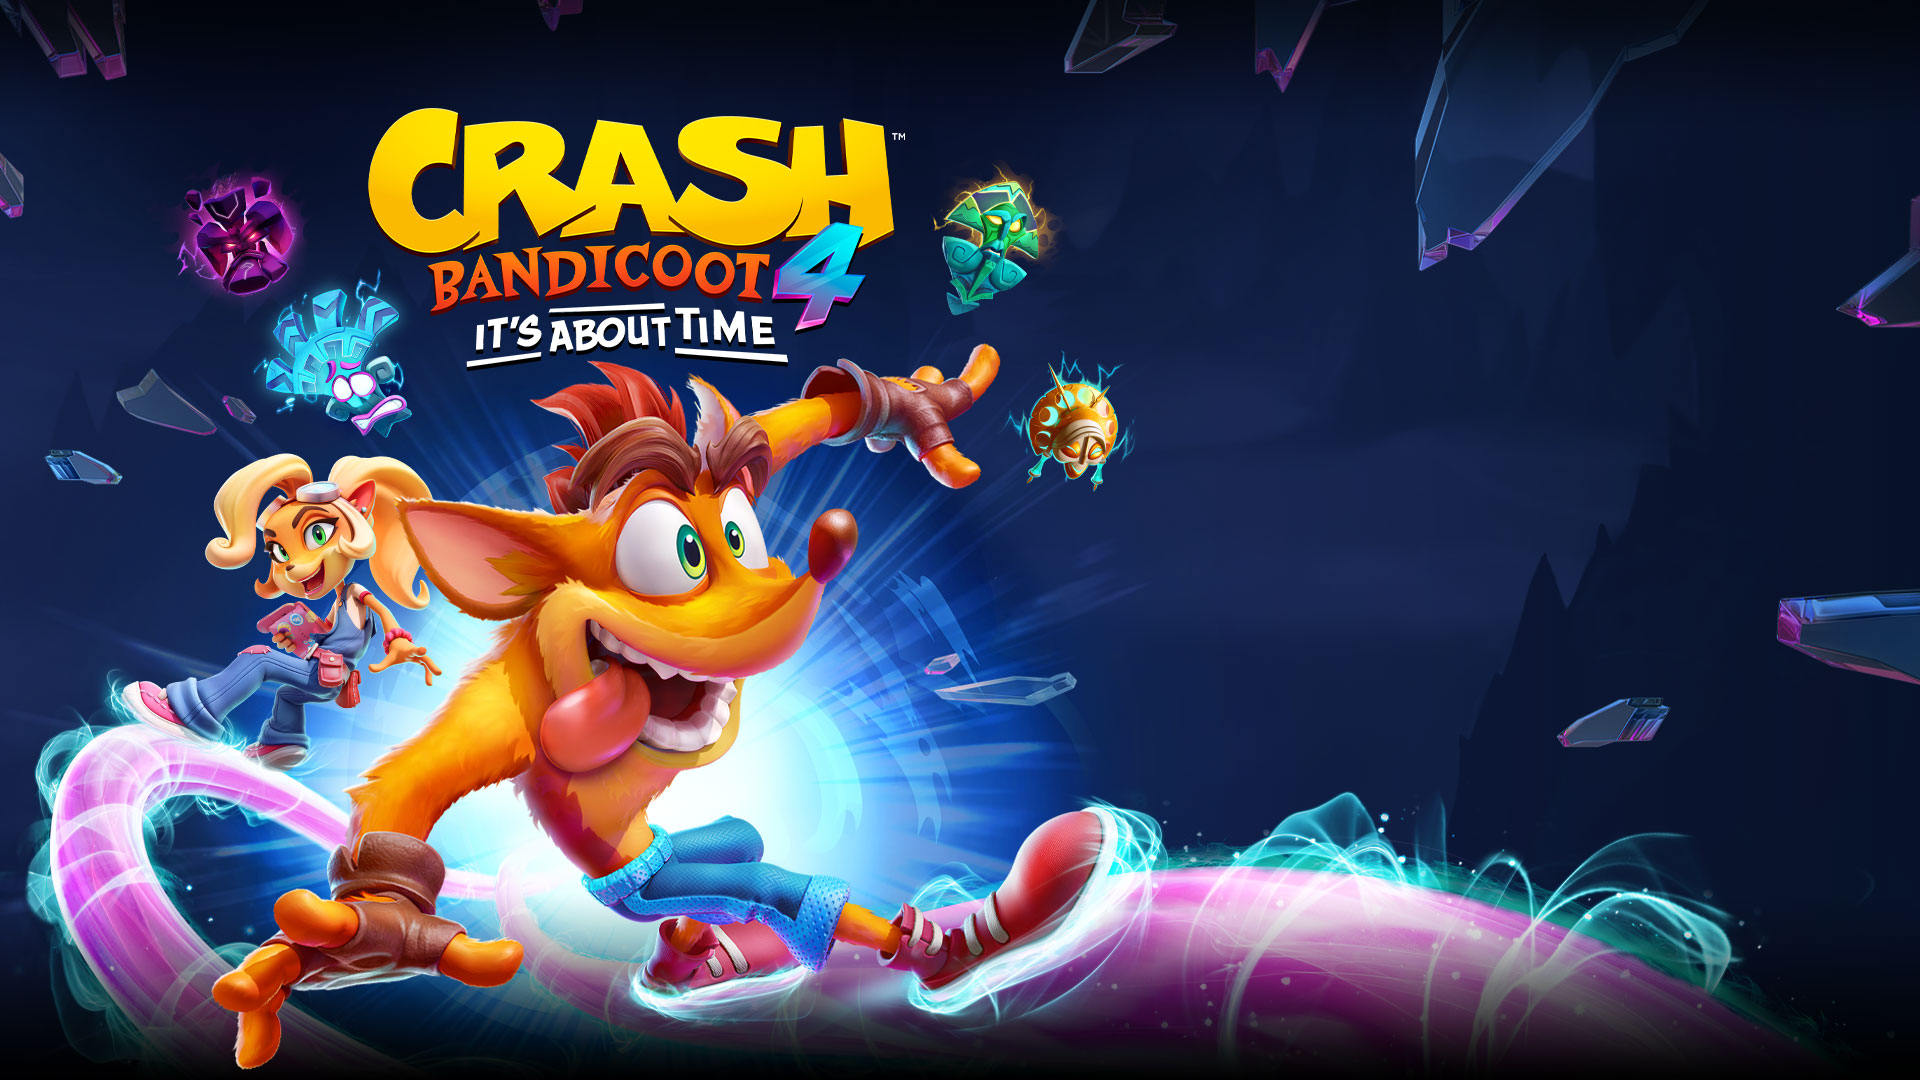 Crash Bandicoot 4, It's About Time, Crash y Coco se deslizan sobre ondas moradas de energía.